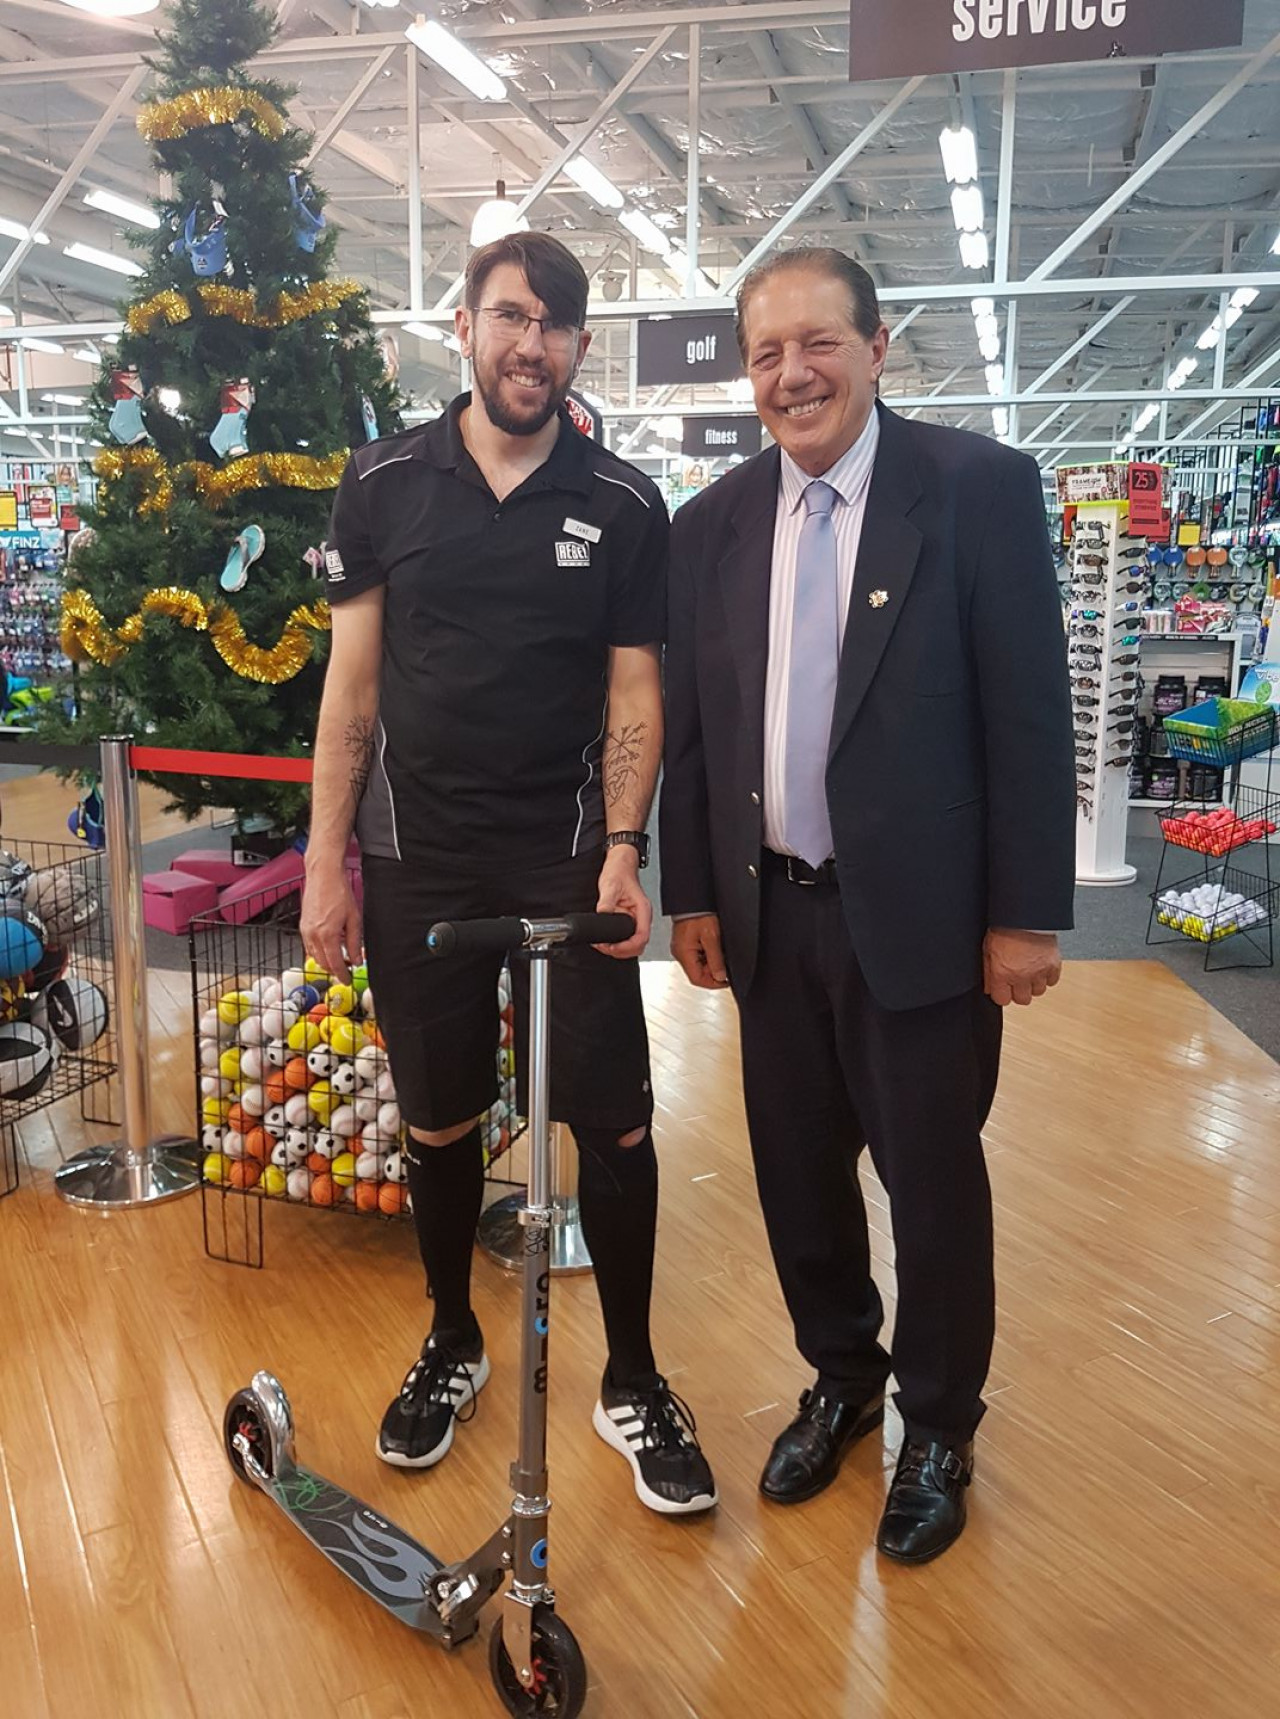 Rebel Sport and Micro Scooters gift Shadbolt a new ride in honour of his efforts towards green transportation in Invercargill!